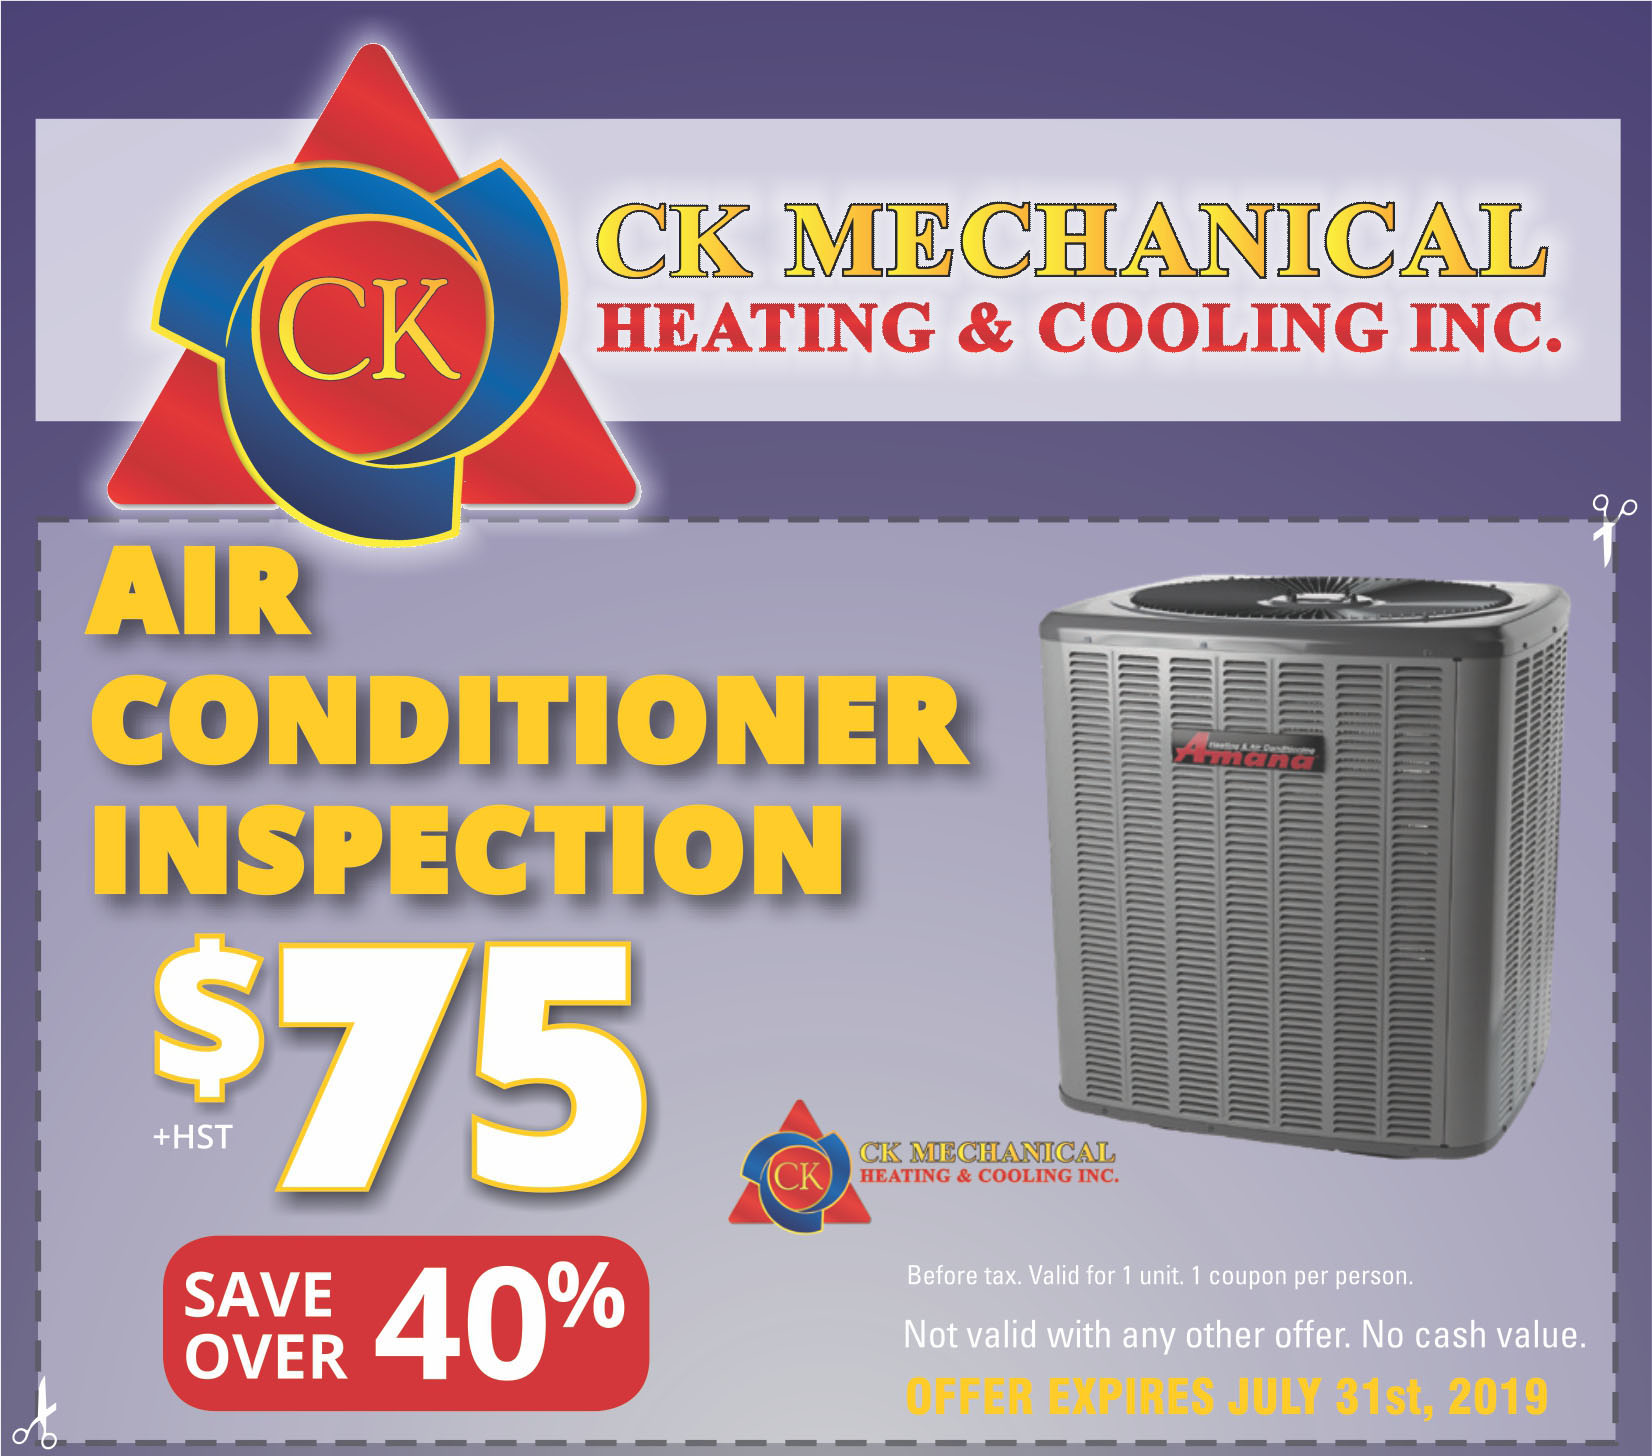 Air Conditioner Inspections in Windsor for &75 + HST at CK Mechanical - valid until July 31st, 2019